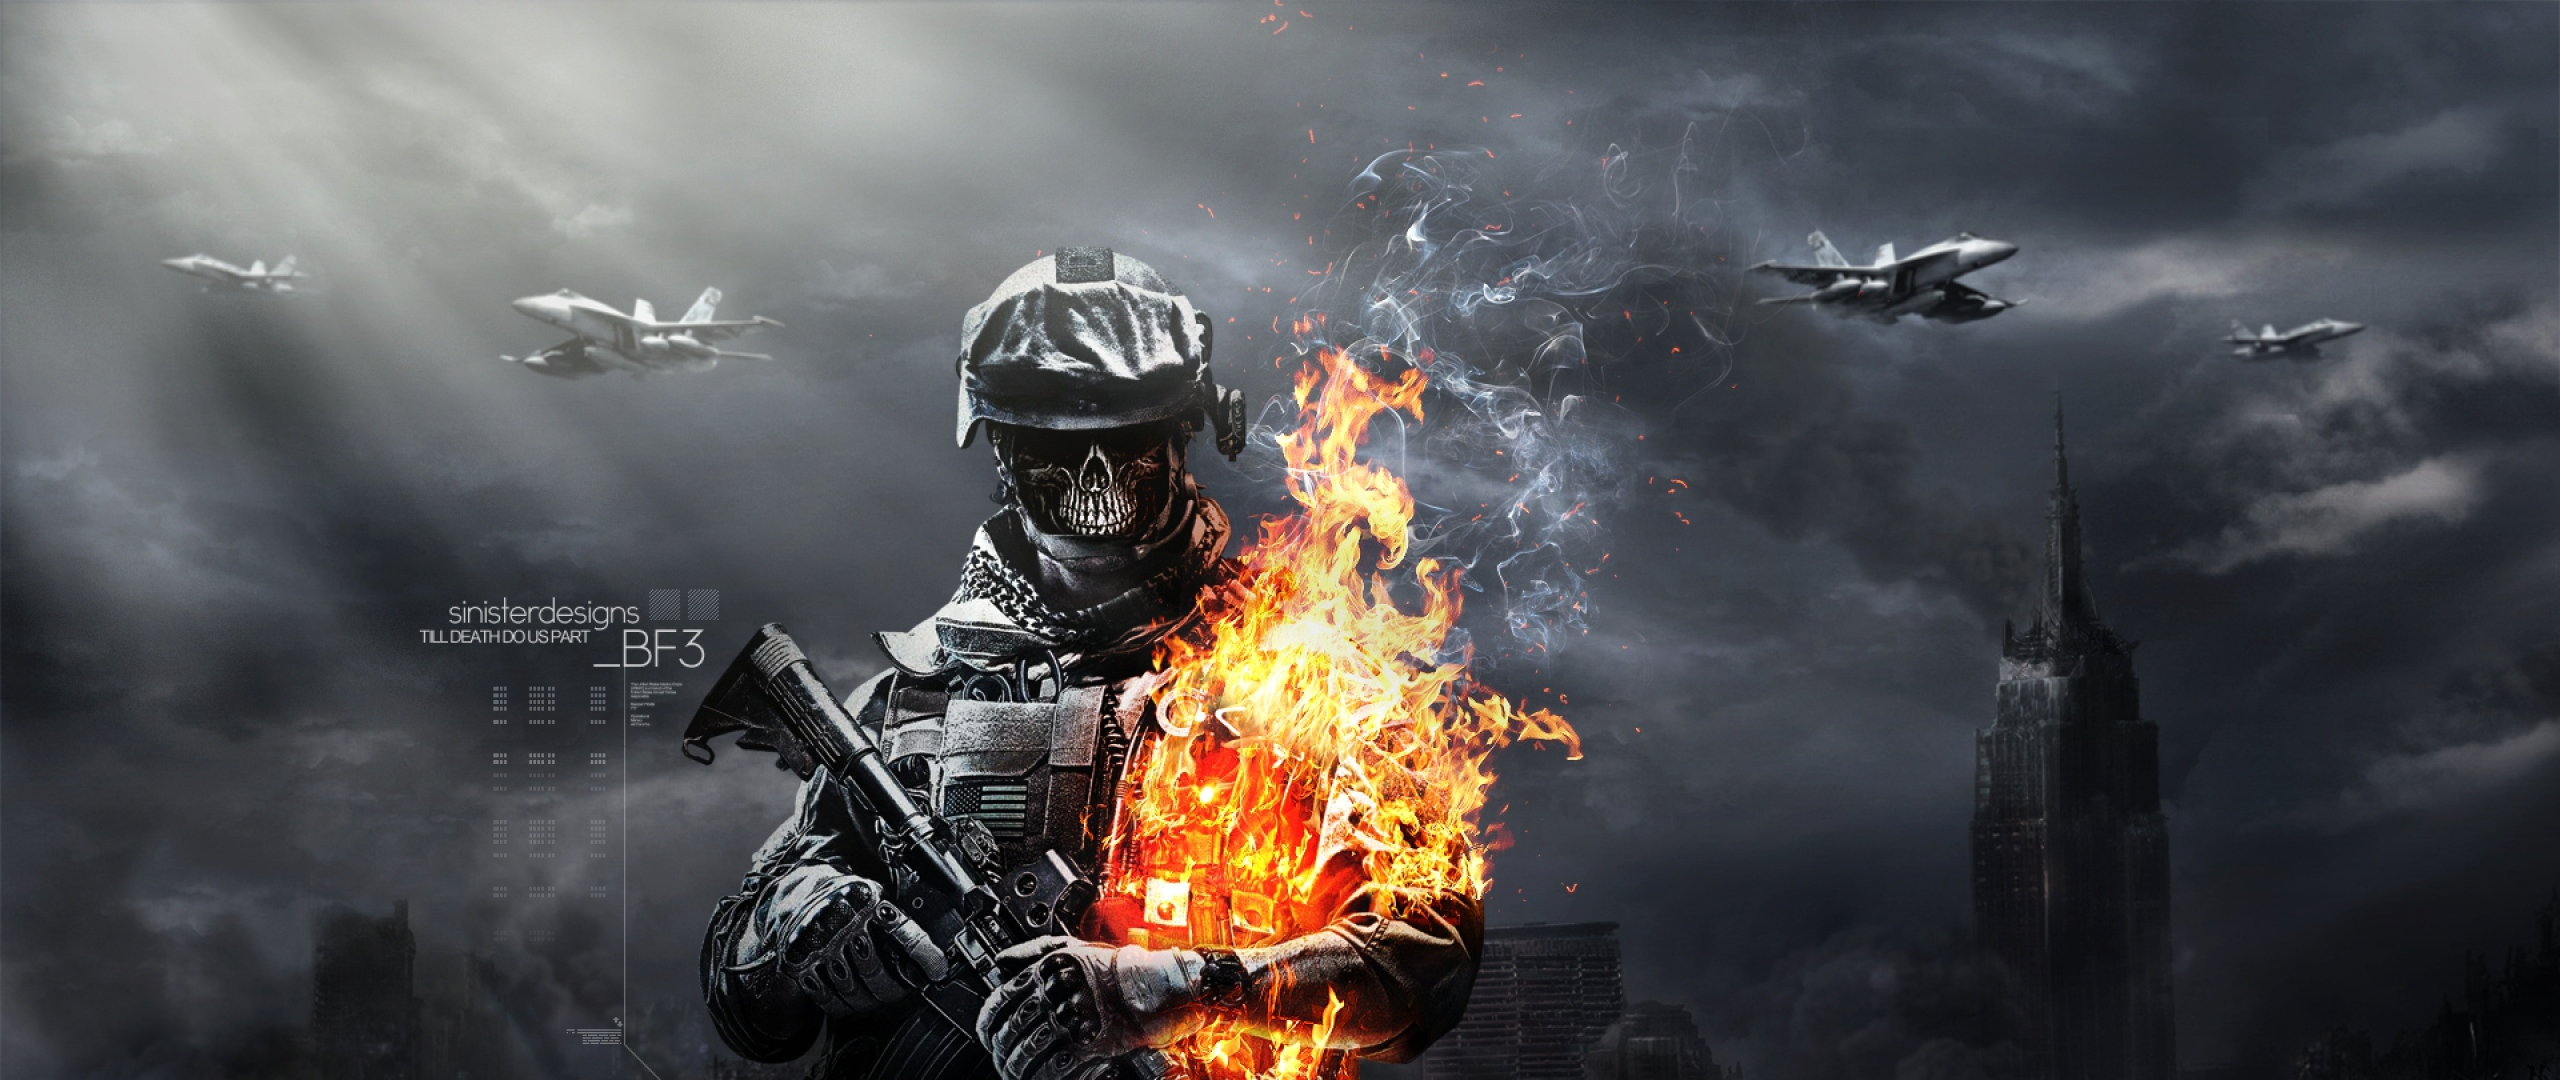 Download Wallpaper 1280x1280 Battlefield 4 Game Ea: 2560X1080 Wallpaper